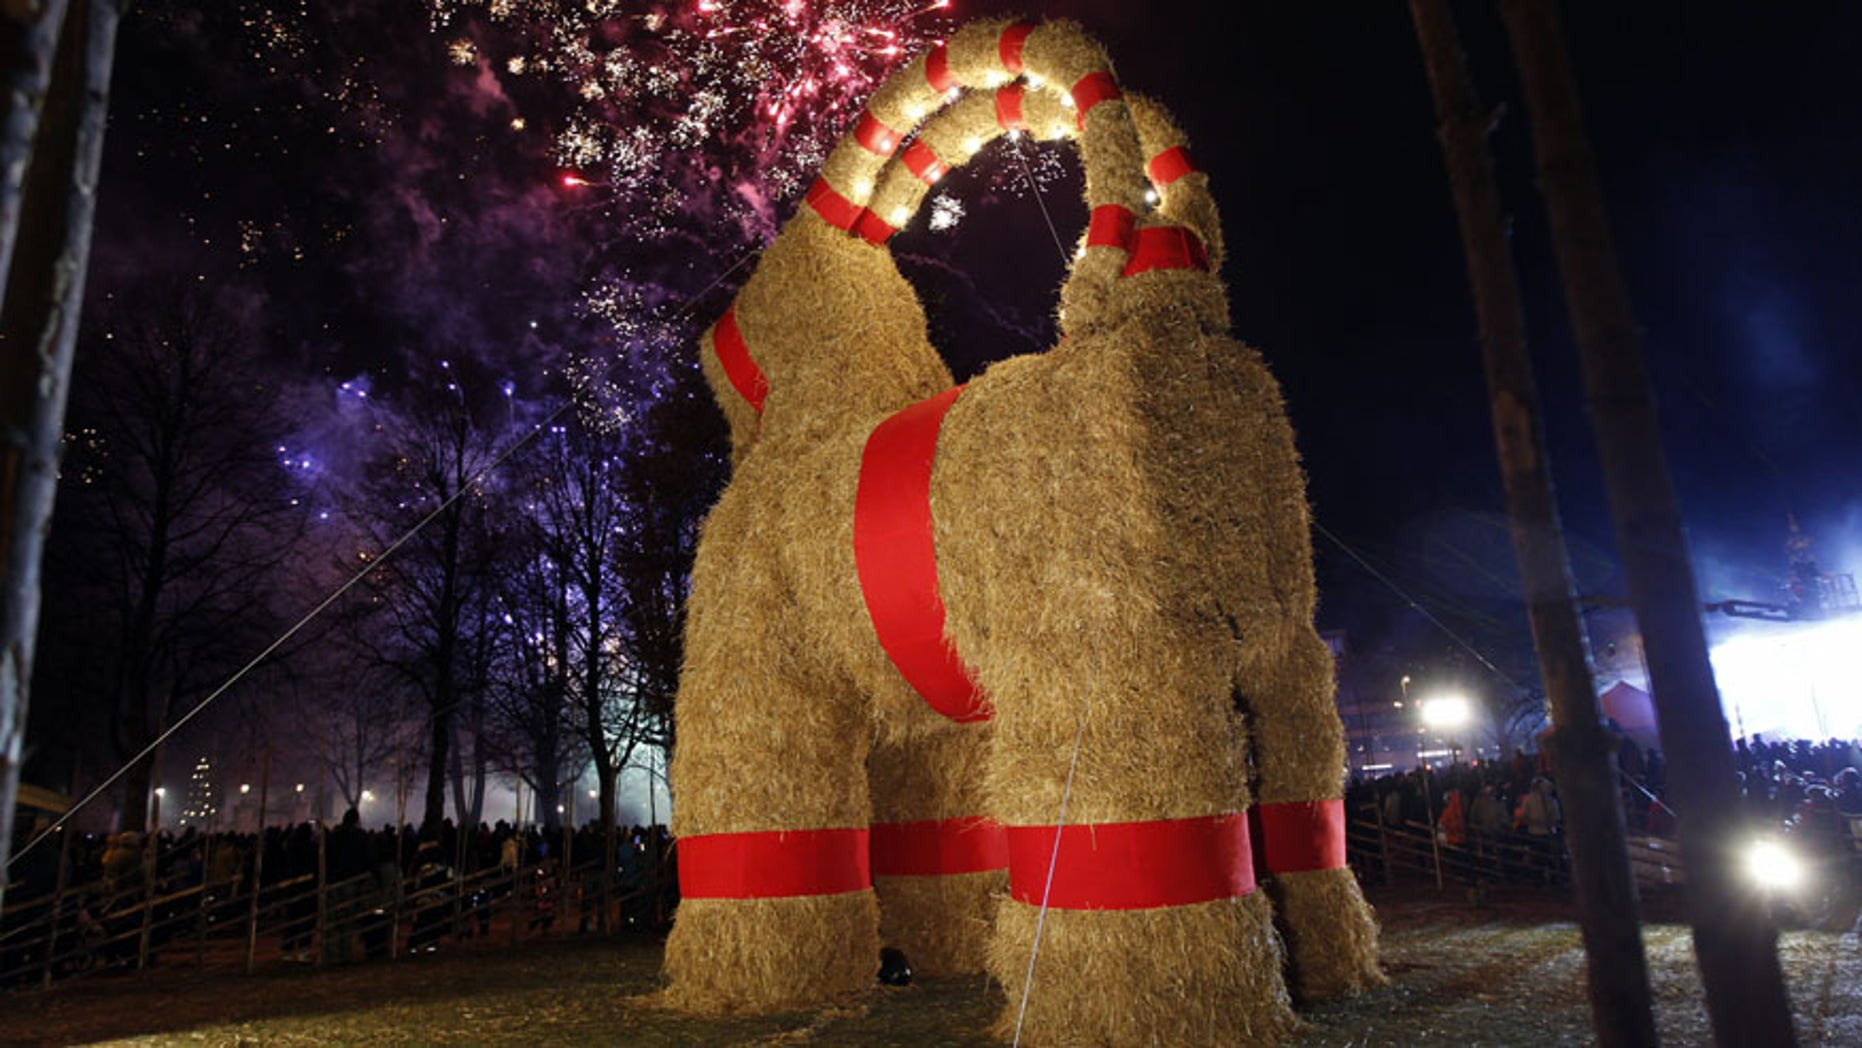 A traditional Christmas goat is unveiled in Gavle, Sweden, Sunday, Nov. 27, 2016. Sweden's Christmas Goat - a giant decorative goat made of straw and wood - is celebrating its 50th birthday, but revelers are being asked to keep the candles away. Every Christmas season since 1966, the city of Gavle in central Sweden builds a giant version of the straw goat, an ancient Scandinavian Yuletide character that precedes Santa Claus as a bringer of gifts, but it also attracts arsonists and seldom survives the season without someone trying to burn it down. To improve its odds this year, the goat set up on Sunday was equipped with closed-circuit TV. (Pernilla Wahlman/TT News Agency via AP)